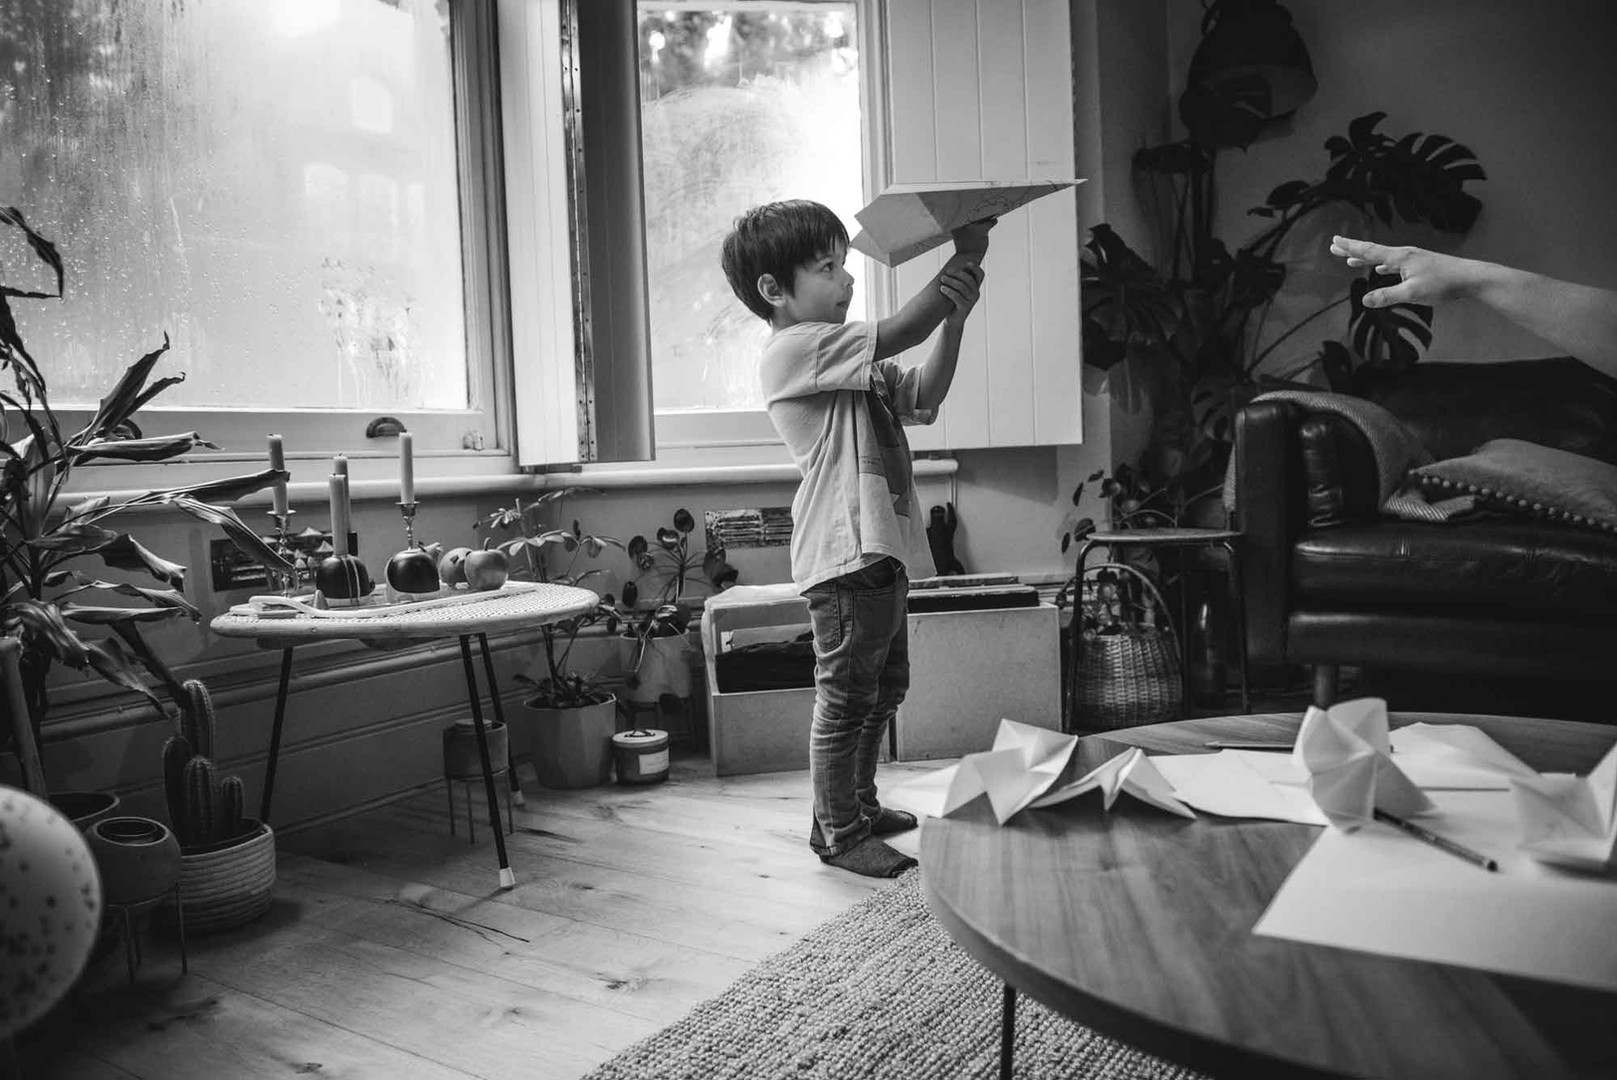 Boy playing with paper aeroplane. Family documentary photo